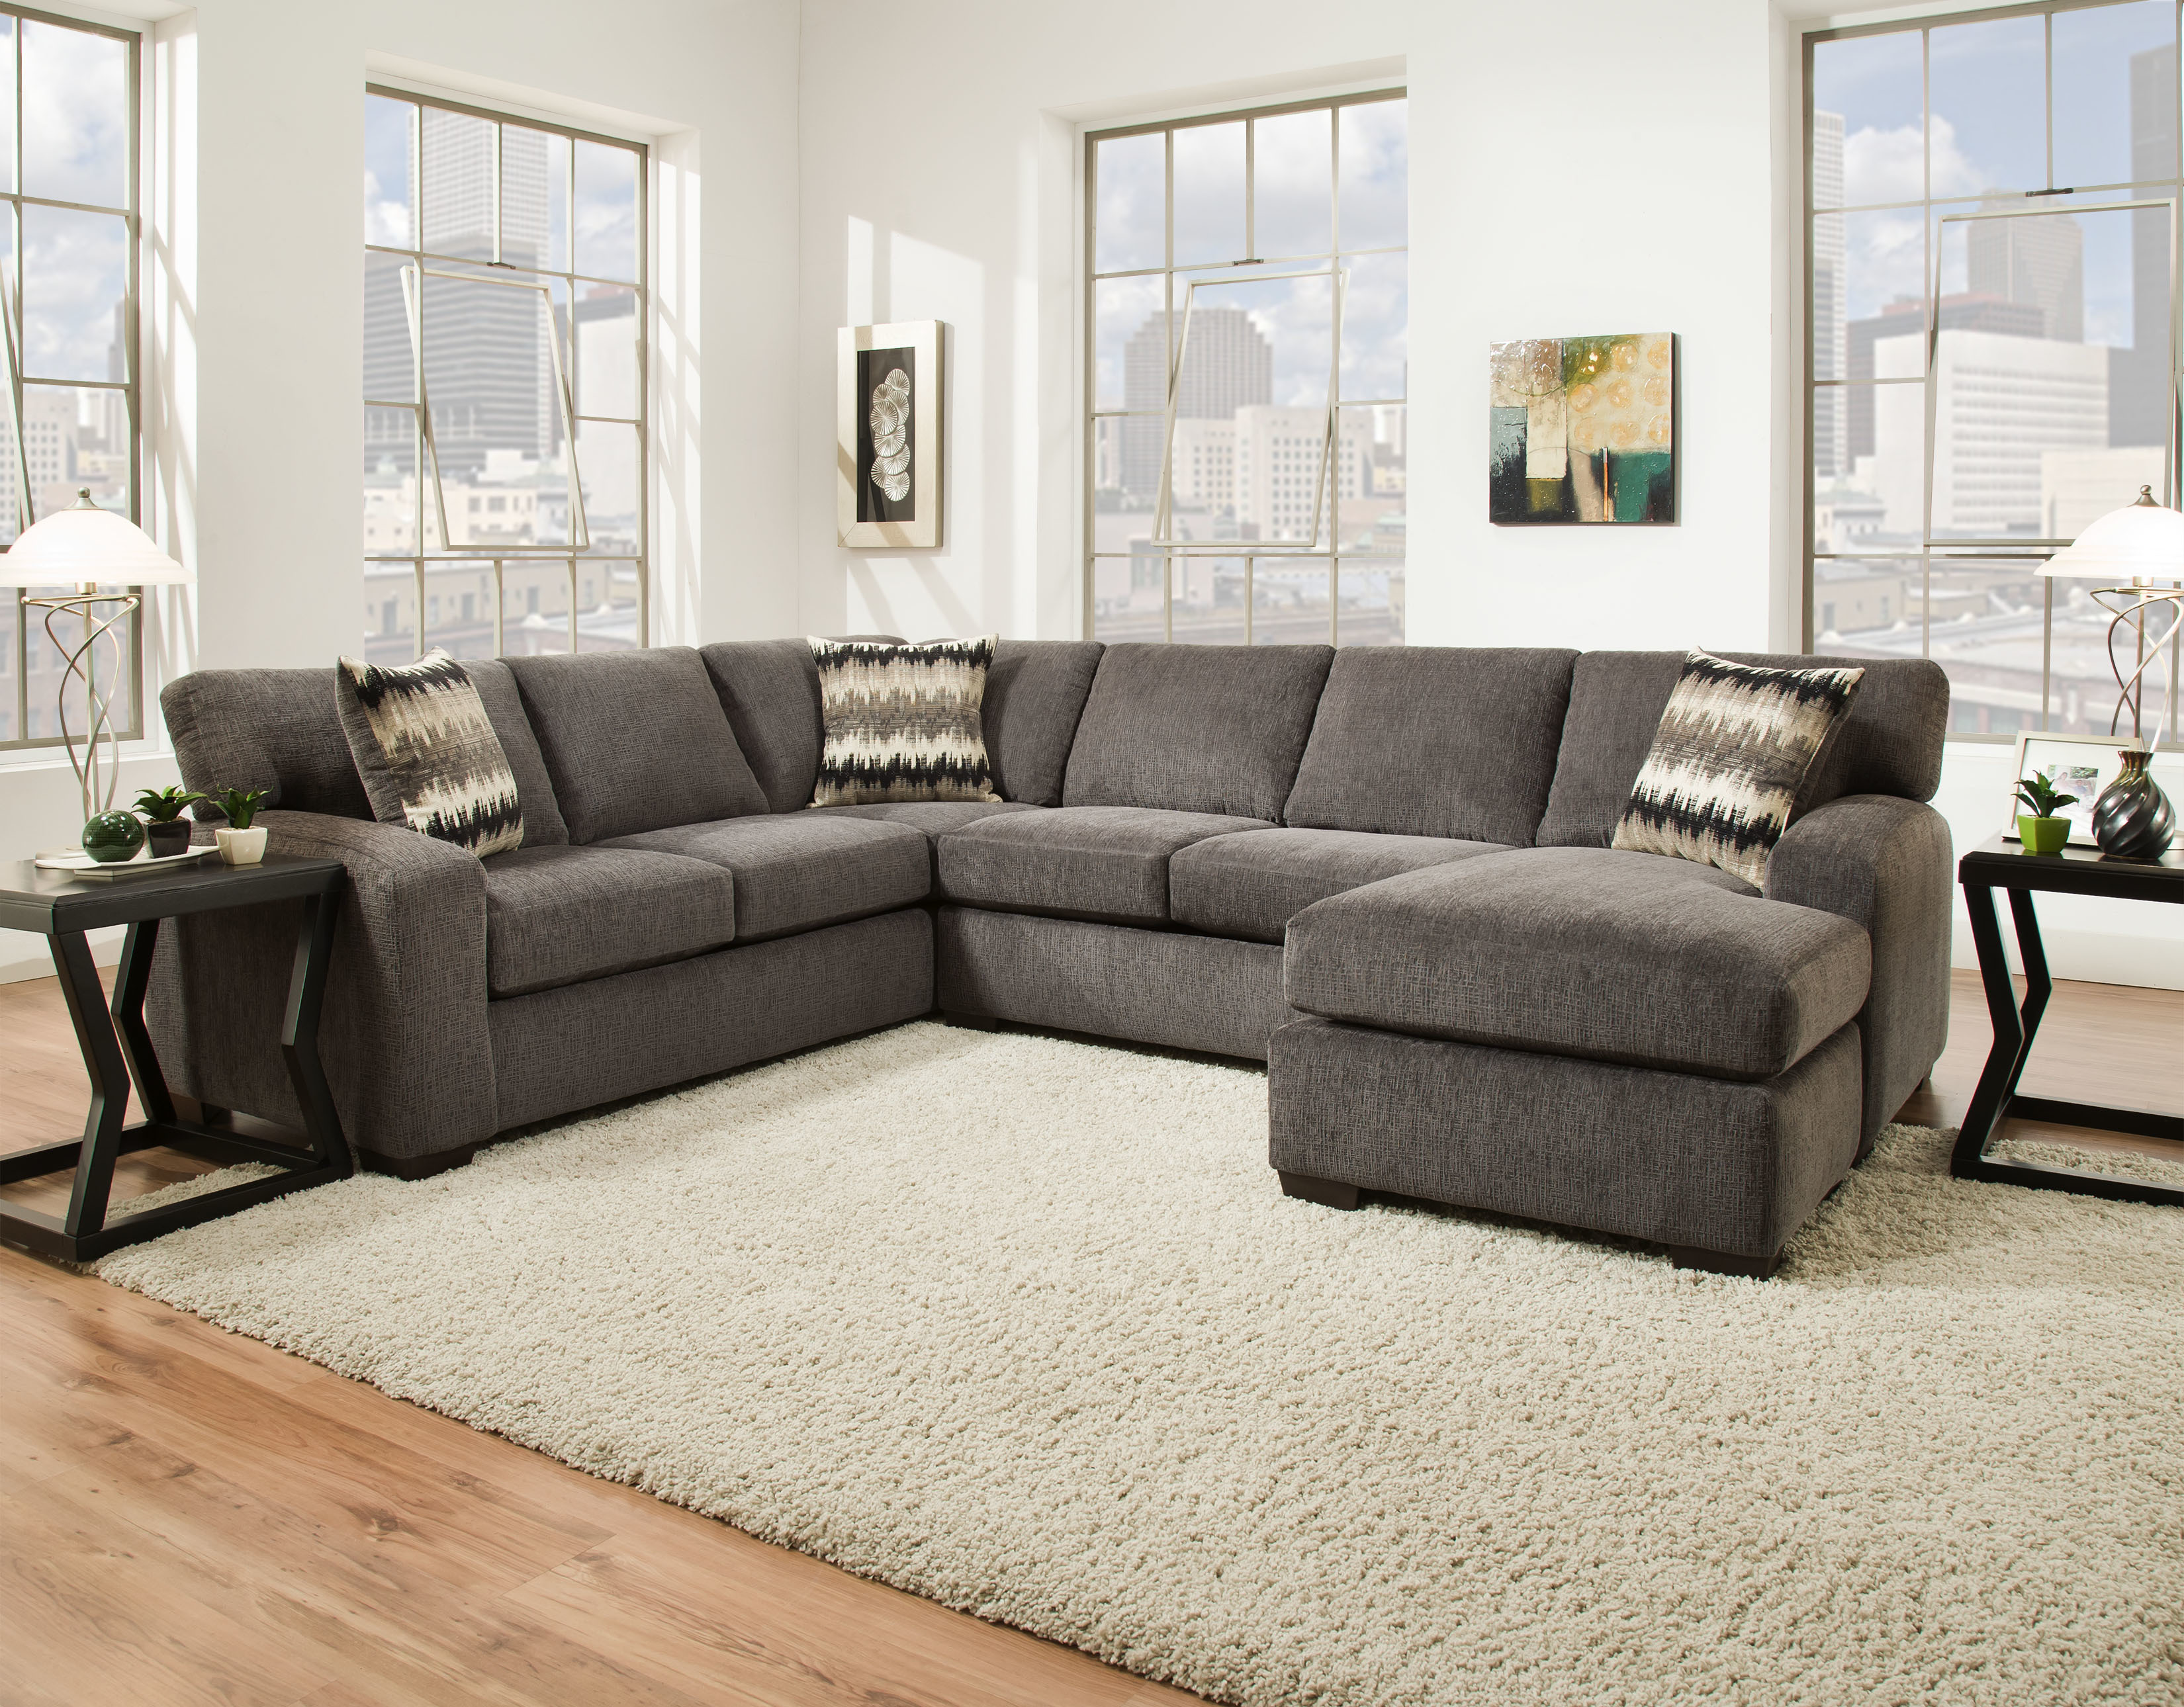 7 Sofas and Sectionals to Bring Style